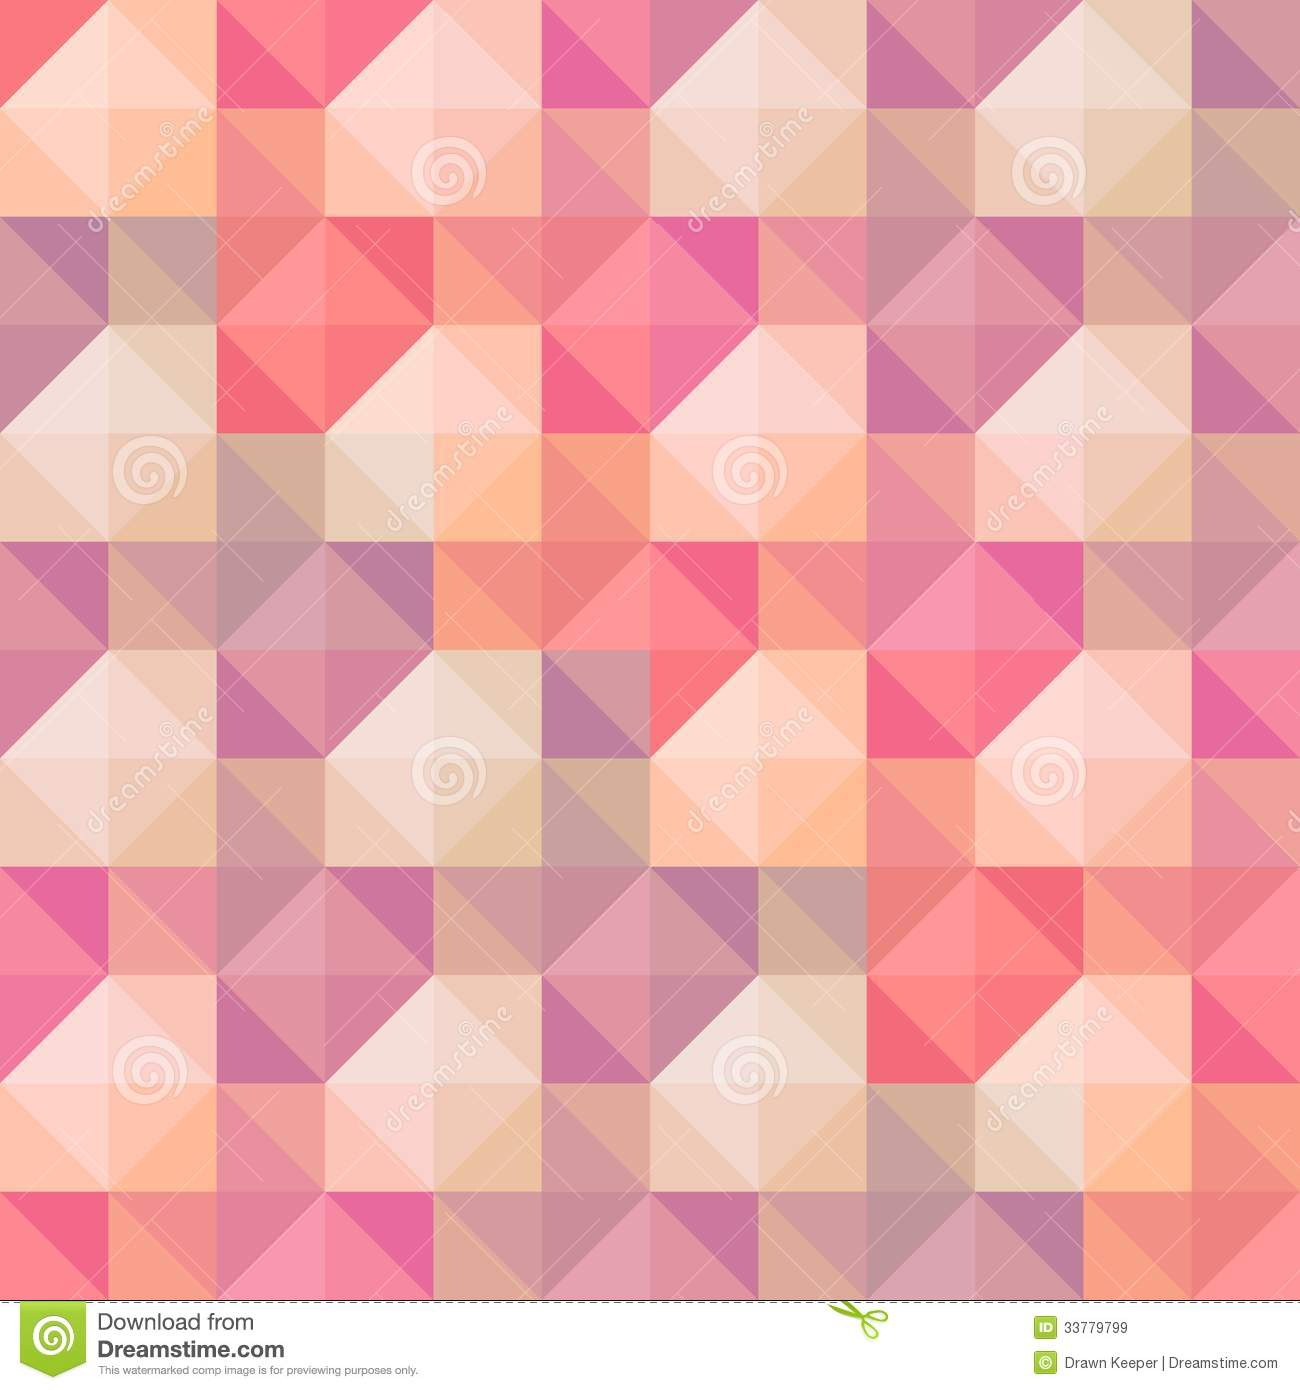 Abstract Geometric Shapes Pattern Royalty Free Stock